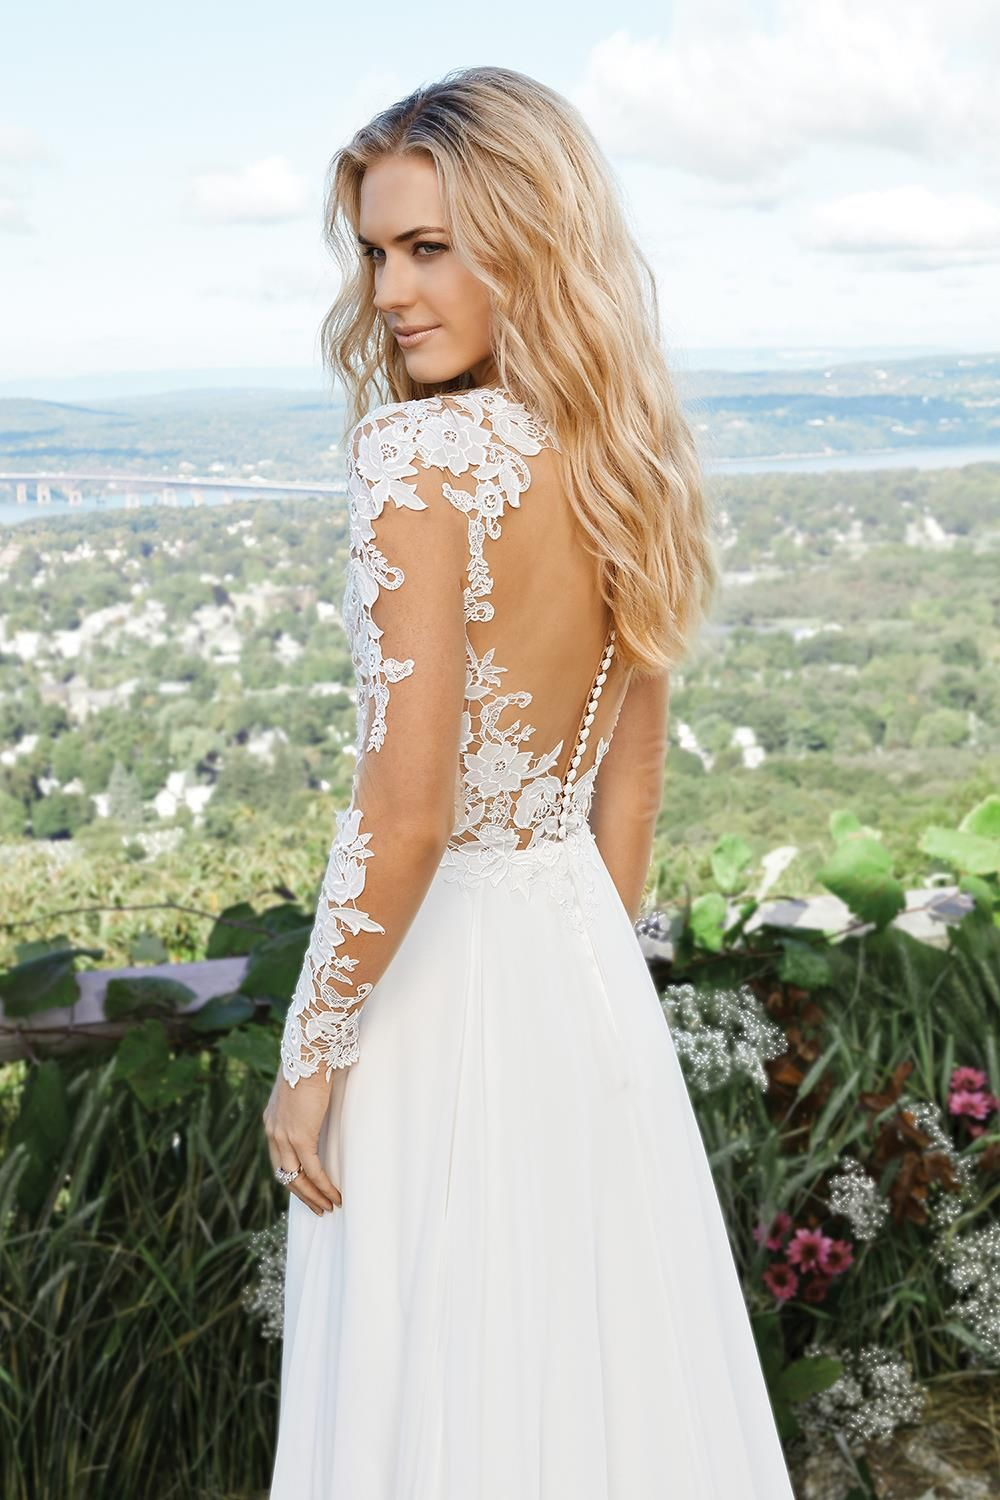 Brides Looking For A Wedding Dress With Sleeves